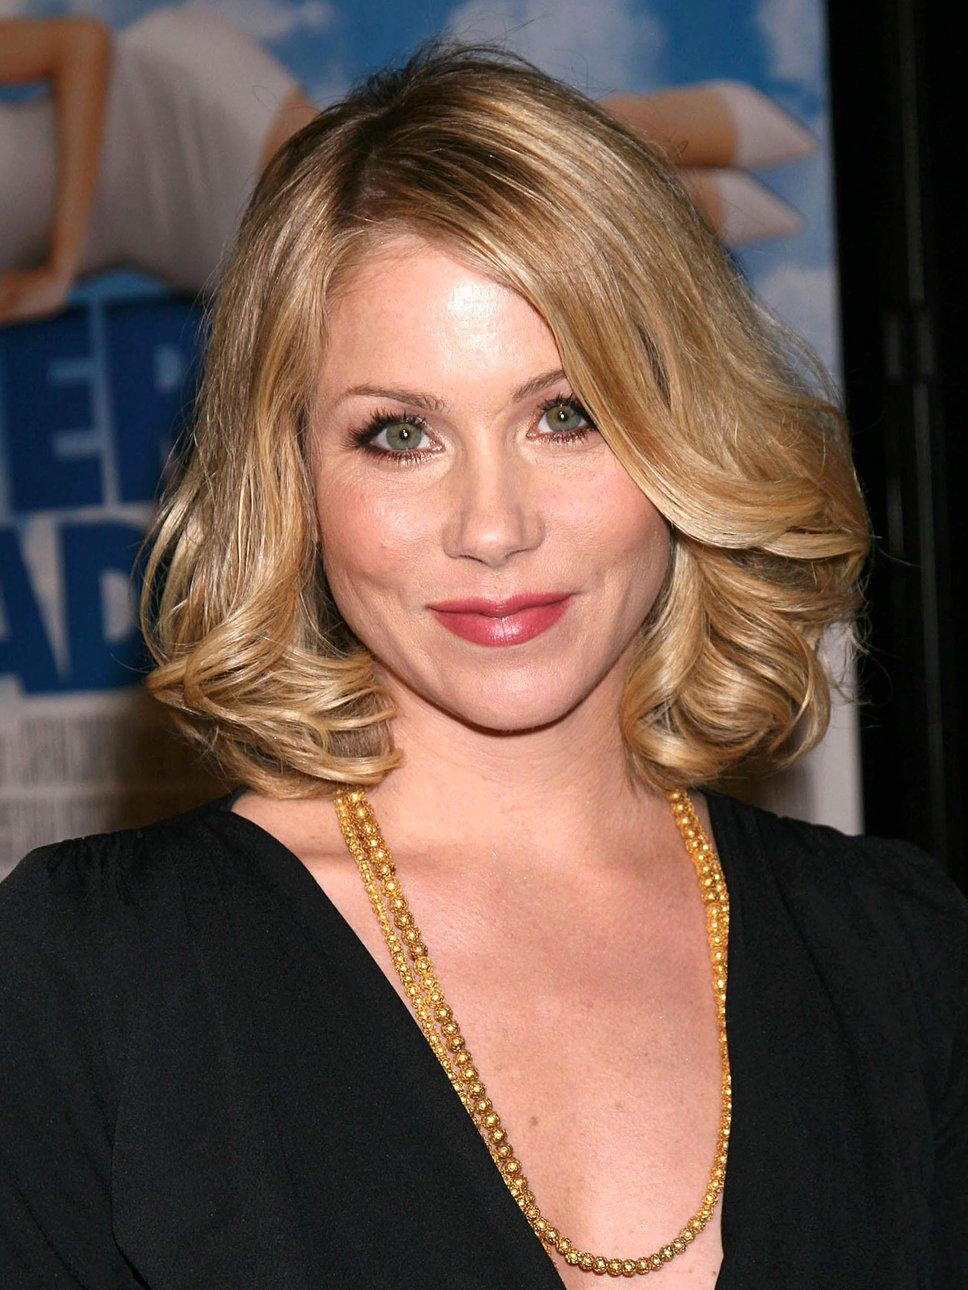 Christina Applegate Nipple Slip Awesome christina applegate | movie and tv star | pinterest